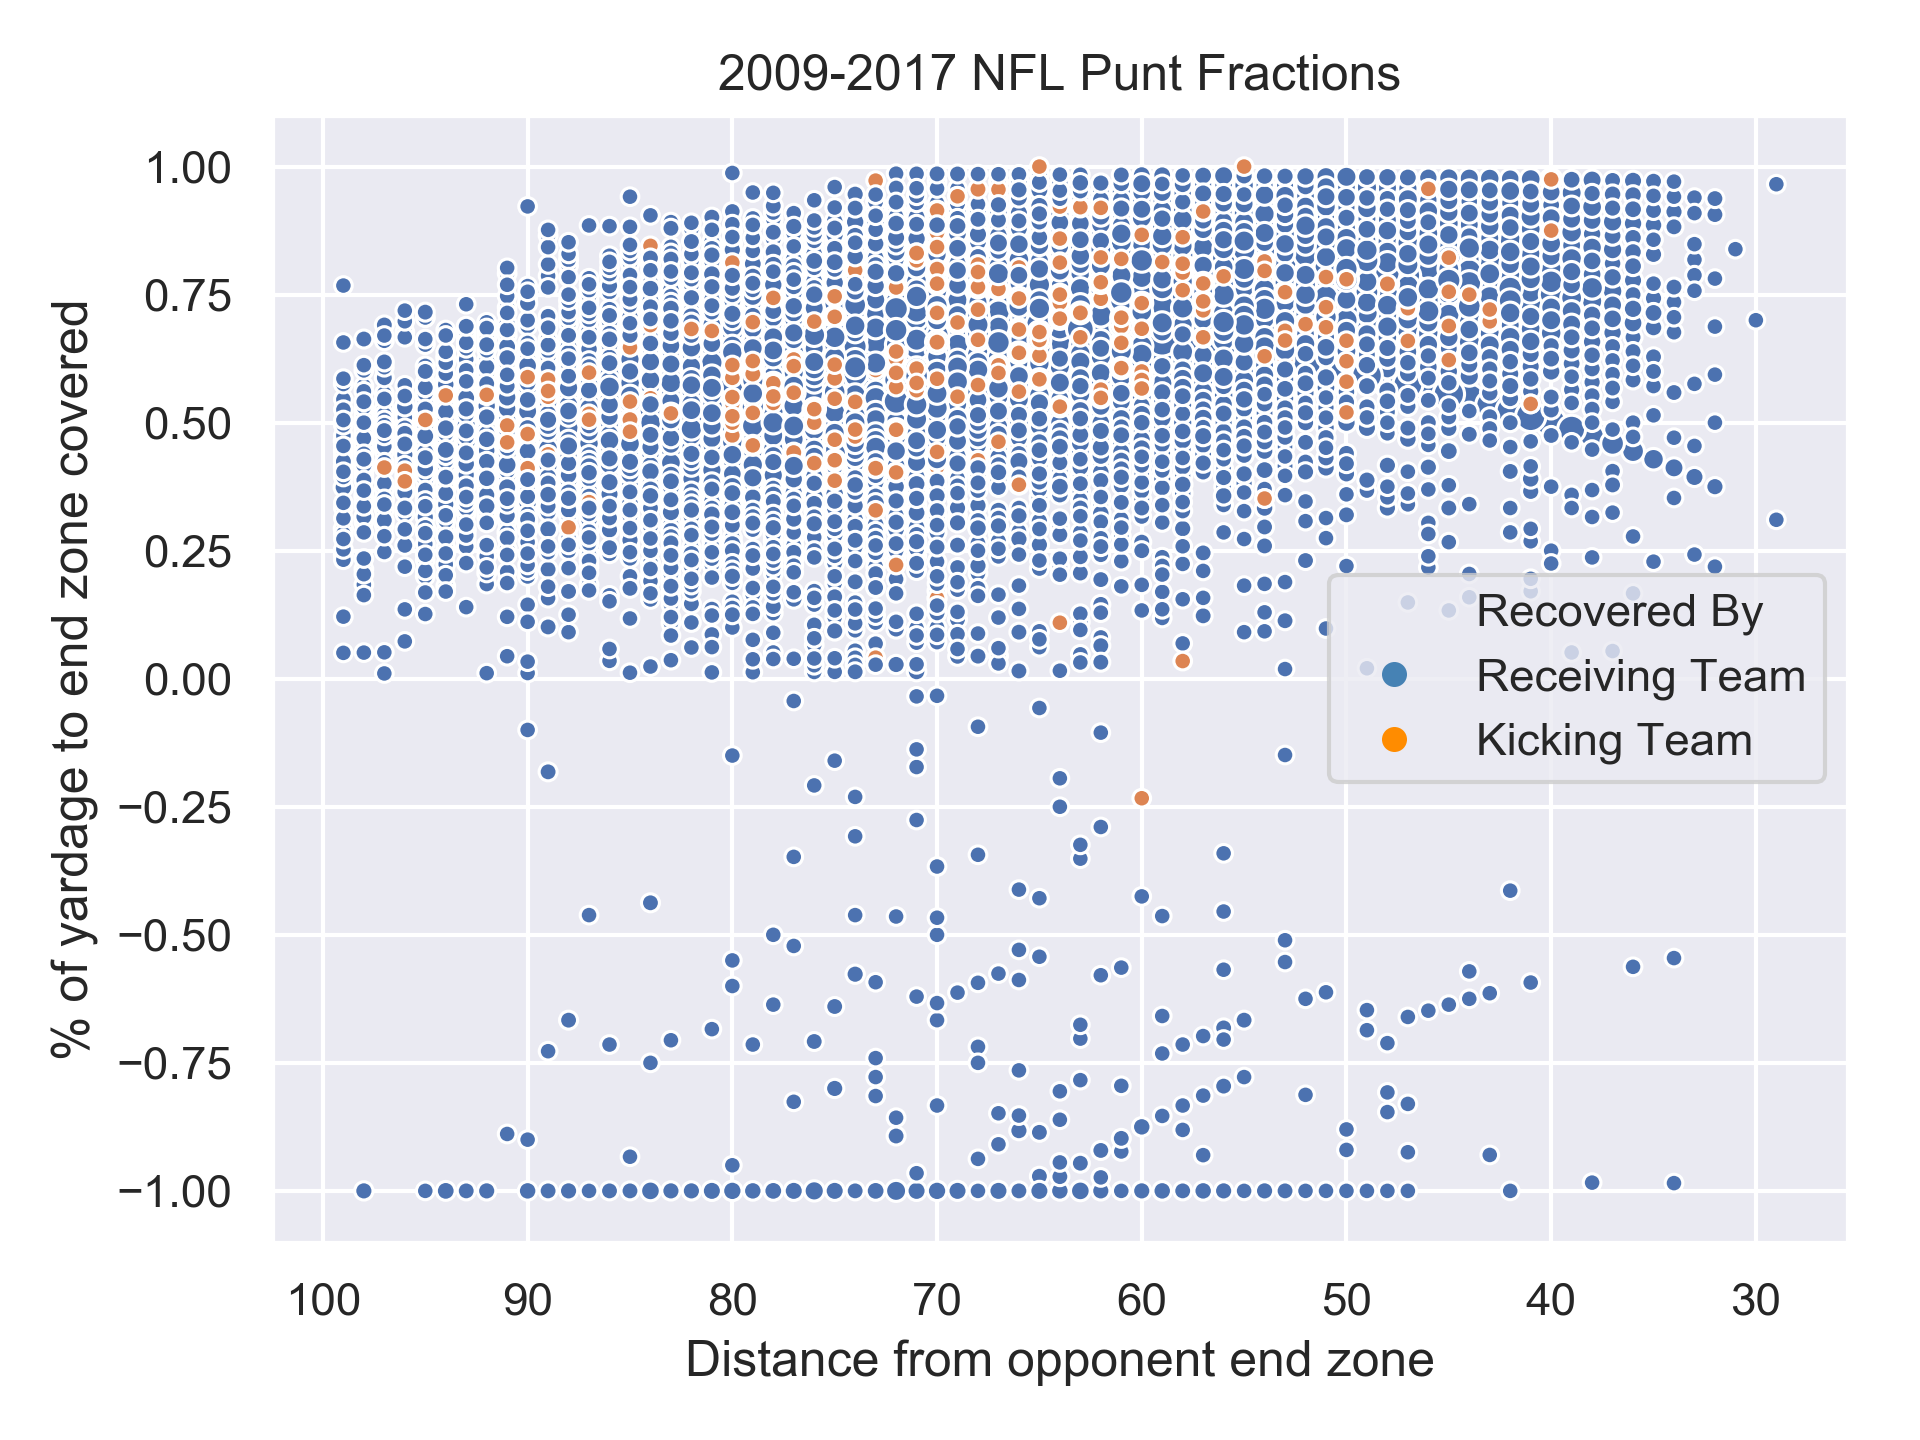 NFL punt fraction